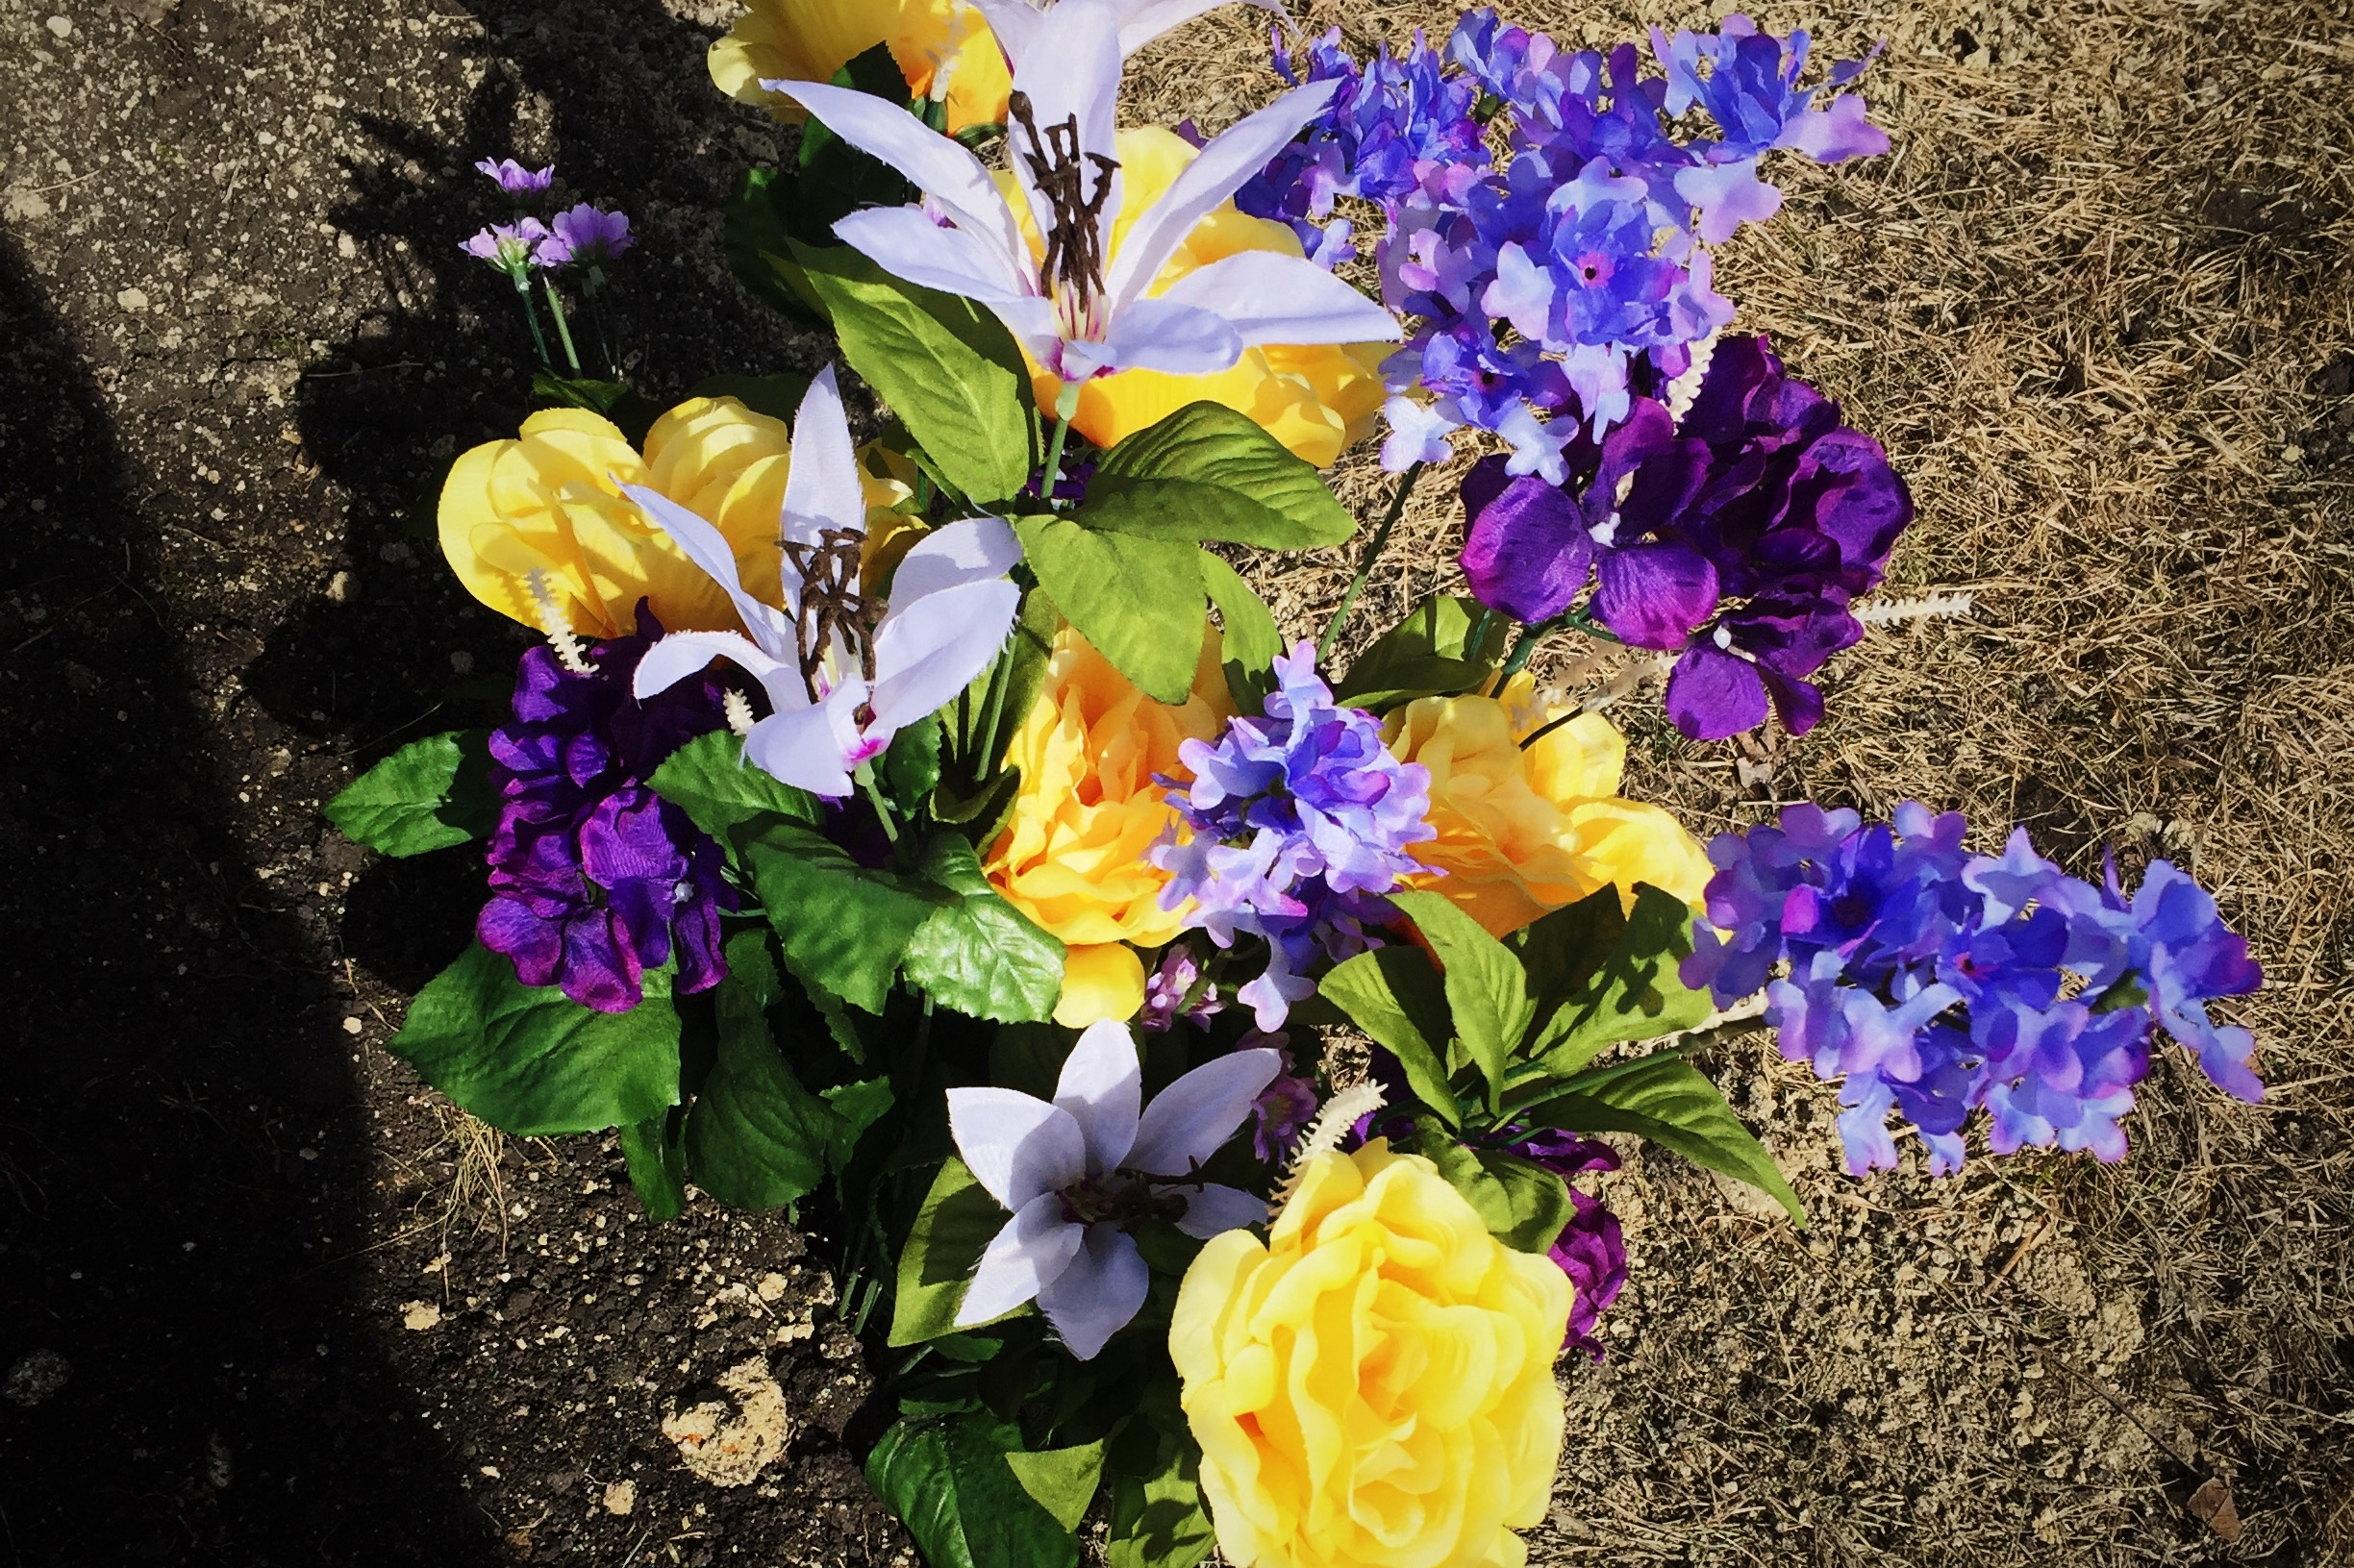 Flowers for Norah, picked out by Lane.